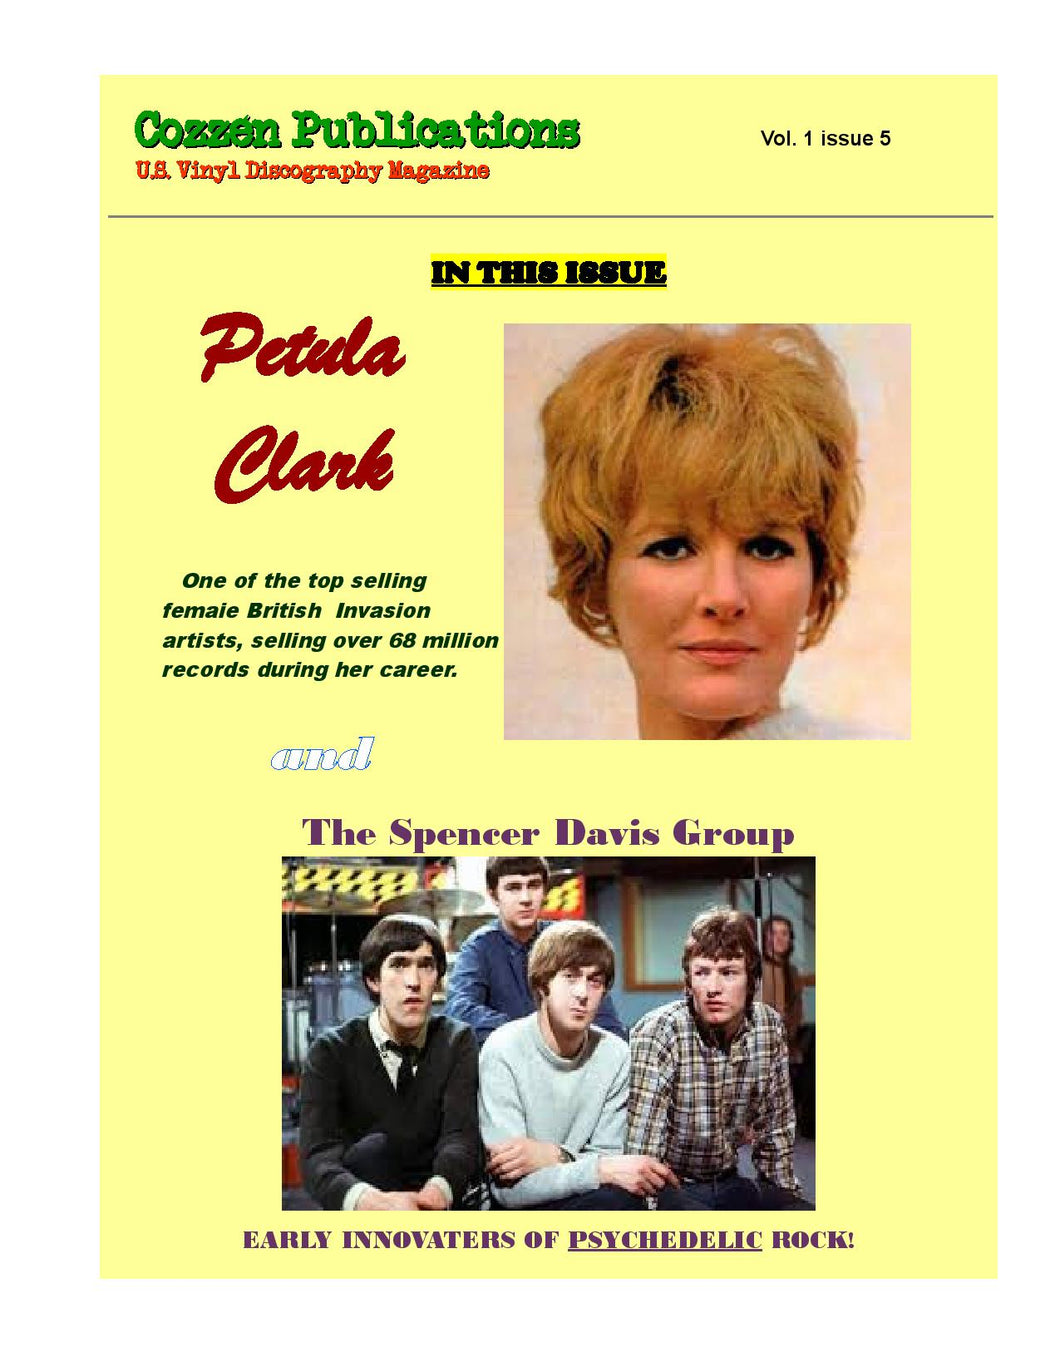 Petula Clark & The Spencer Davis Group - U.S. Vinyl Discography Magazine - Vol. 1, Issue 5